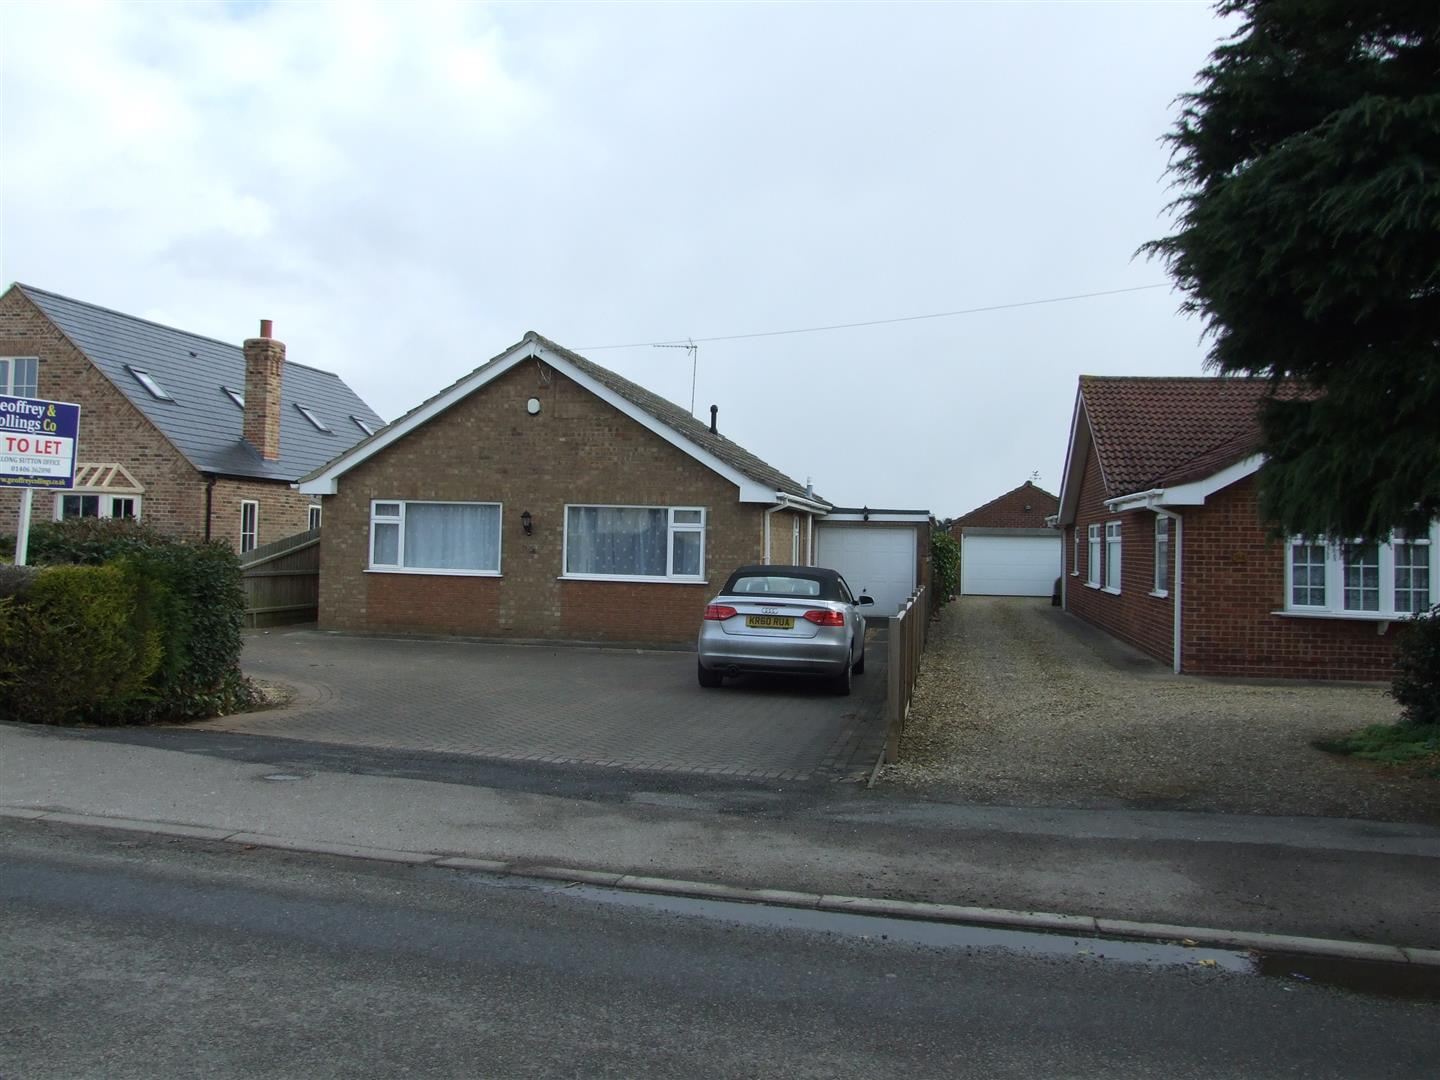 3 bed detached bungalow to rent in Long Sutton Spalding, PE12 9LF - Property Image 1